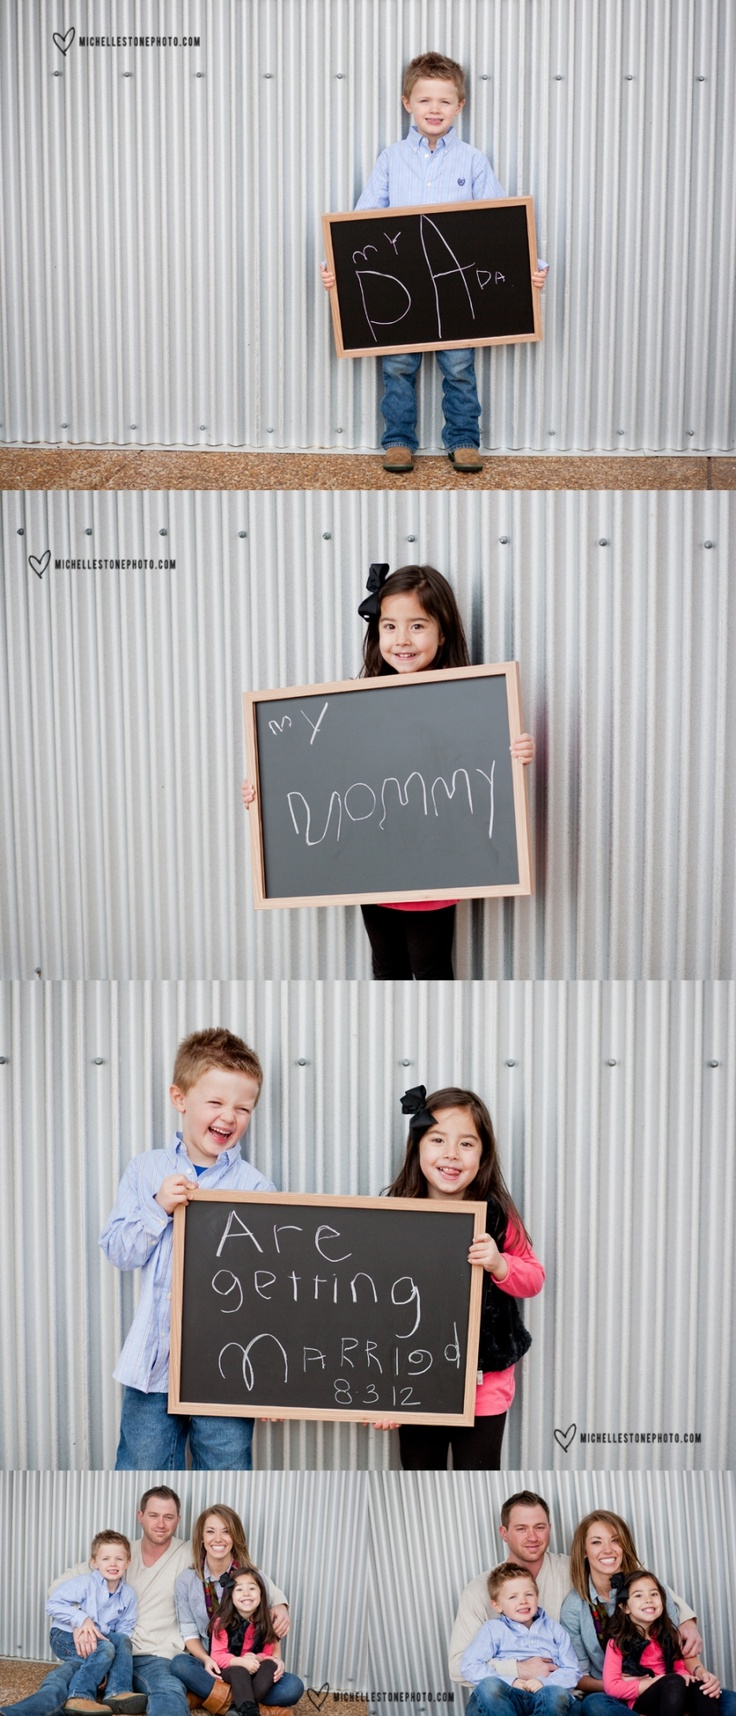 engagement pictures with kids - Google Search